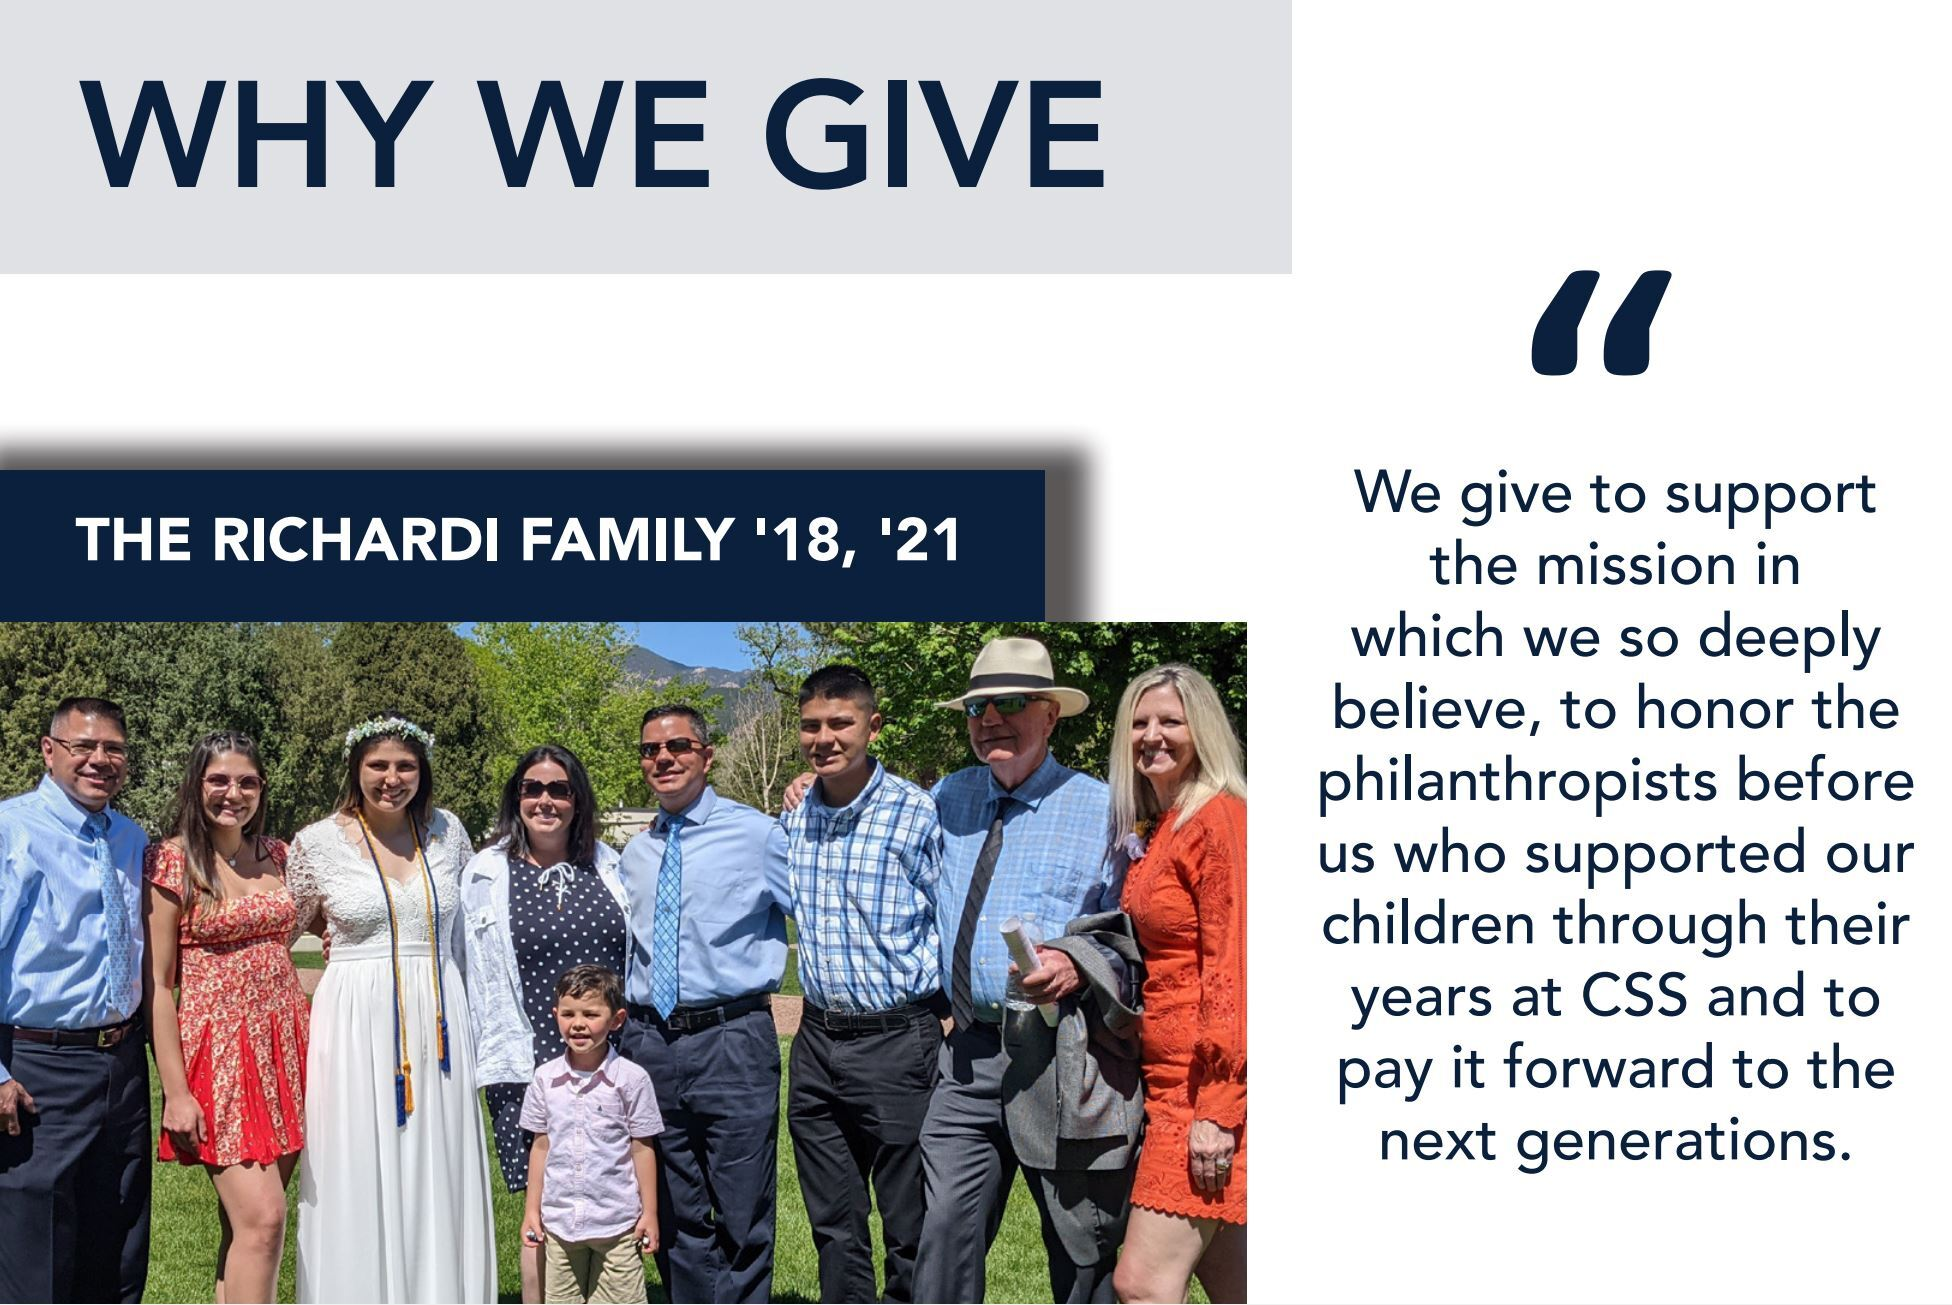 Why We Give - The Richardi Family '18, '21